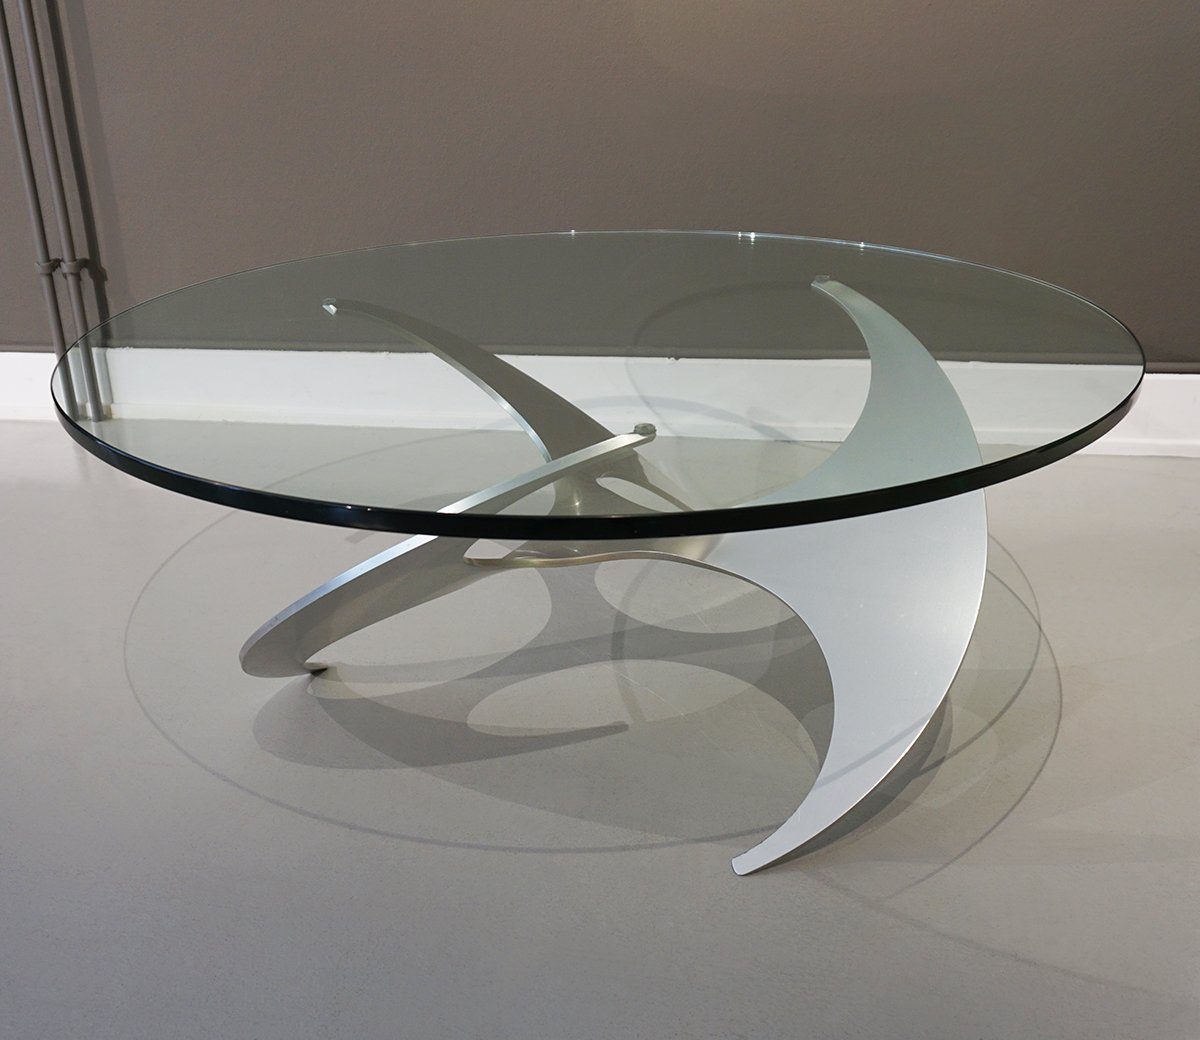 Couchtisch Ronald Schmitt Mid Century Model K9 Coffee Table By Knut Hesterberg For Ronald Schmitt